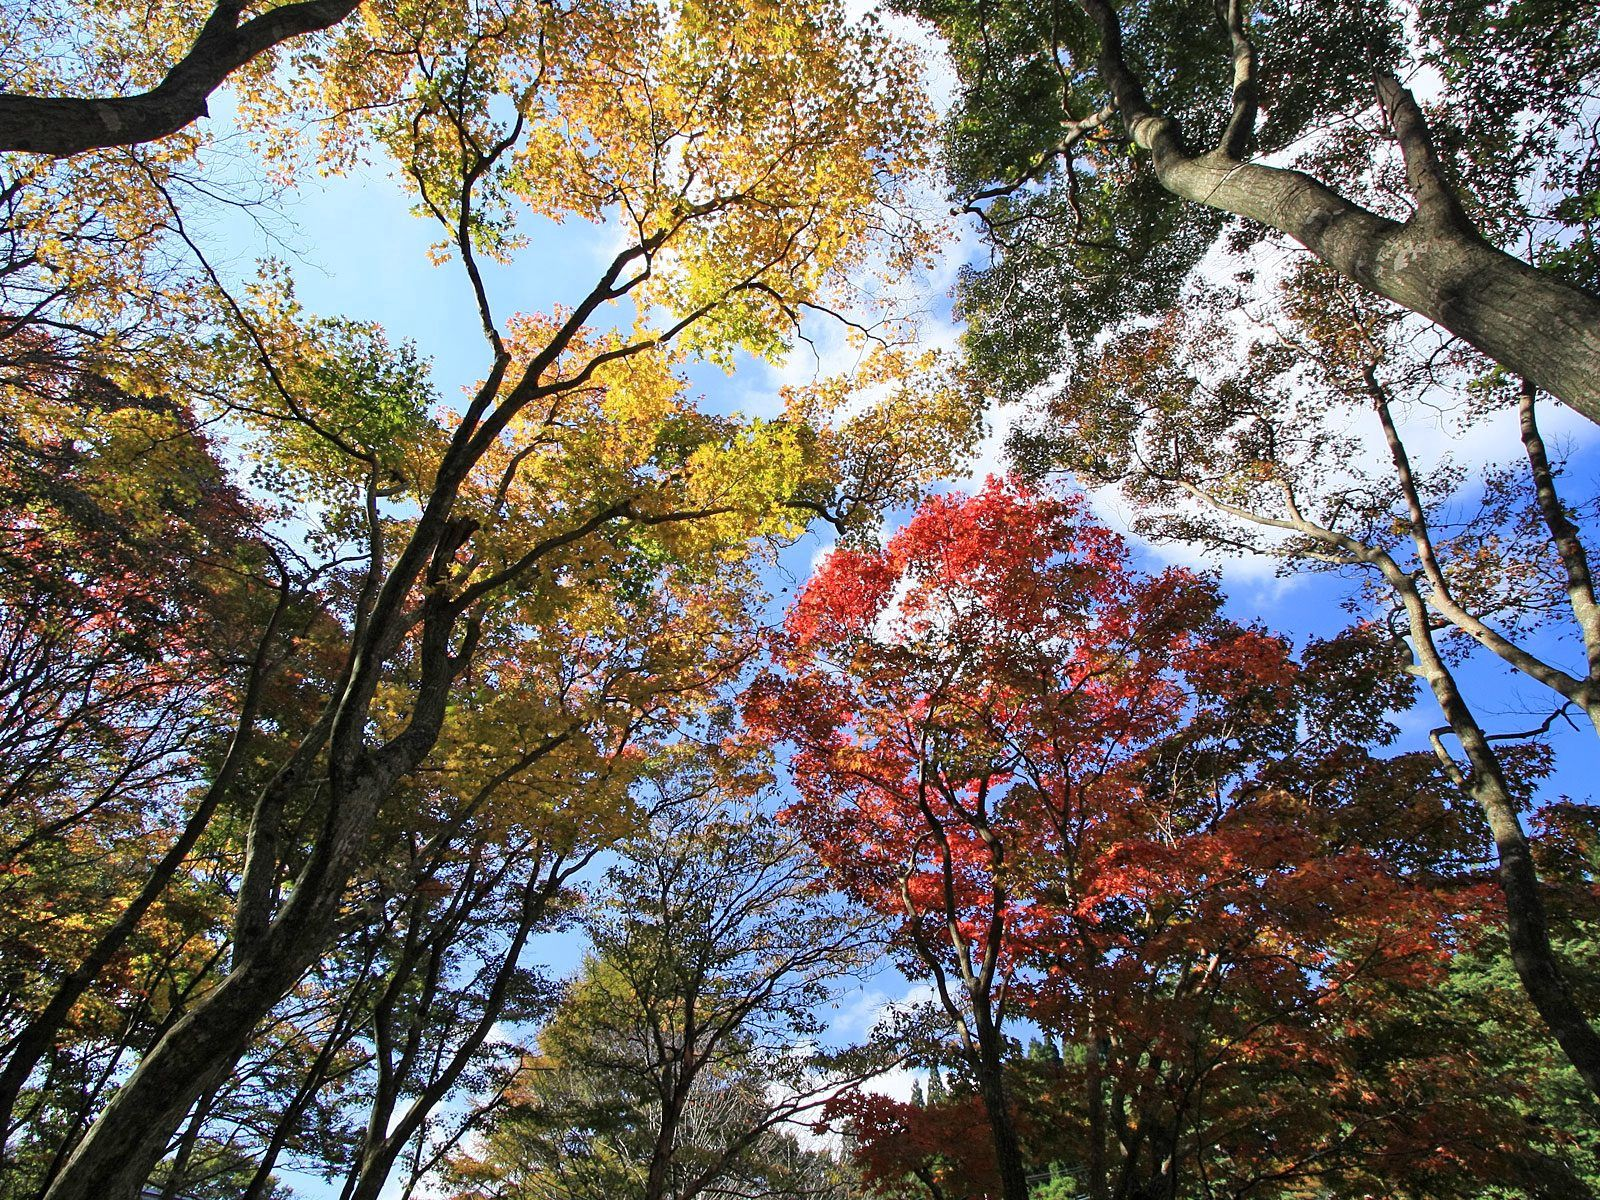 104594 download wallpaper Nature, Trees, Sky, Leaves, Up, Top screensavers and pictures for free